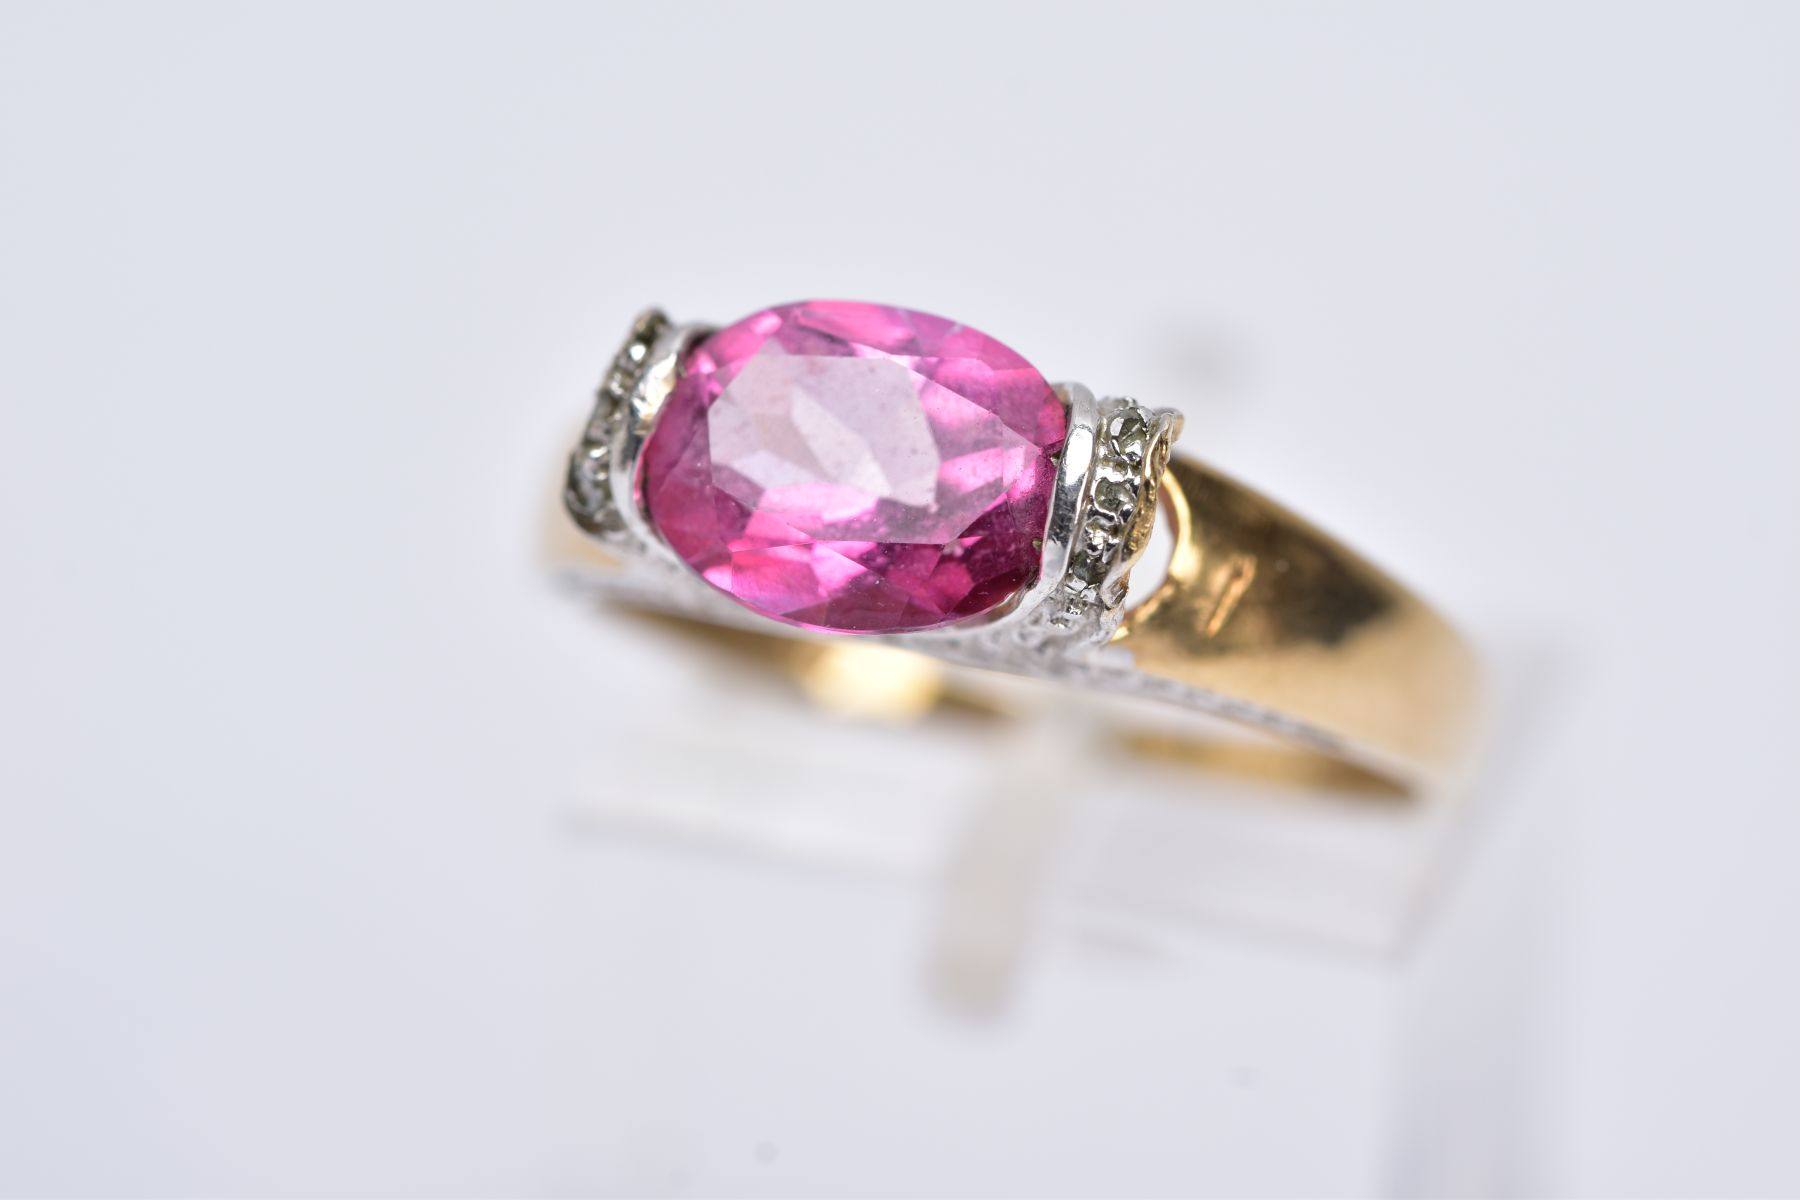 A 9CT GOLD PINK TOPAZ RING, designed with a tension set, oval cut pink topaz, single cut diamond - Image 2 of 5